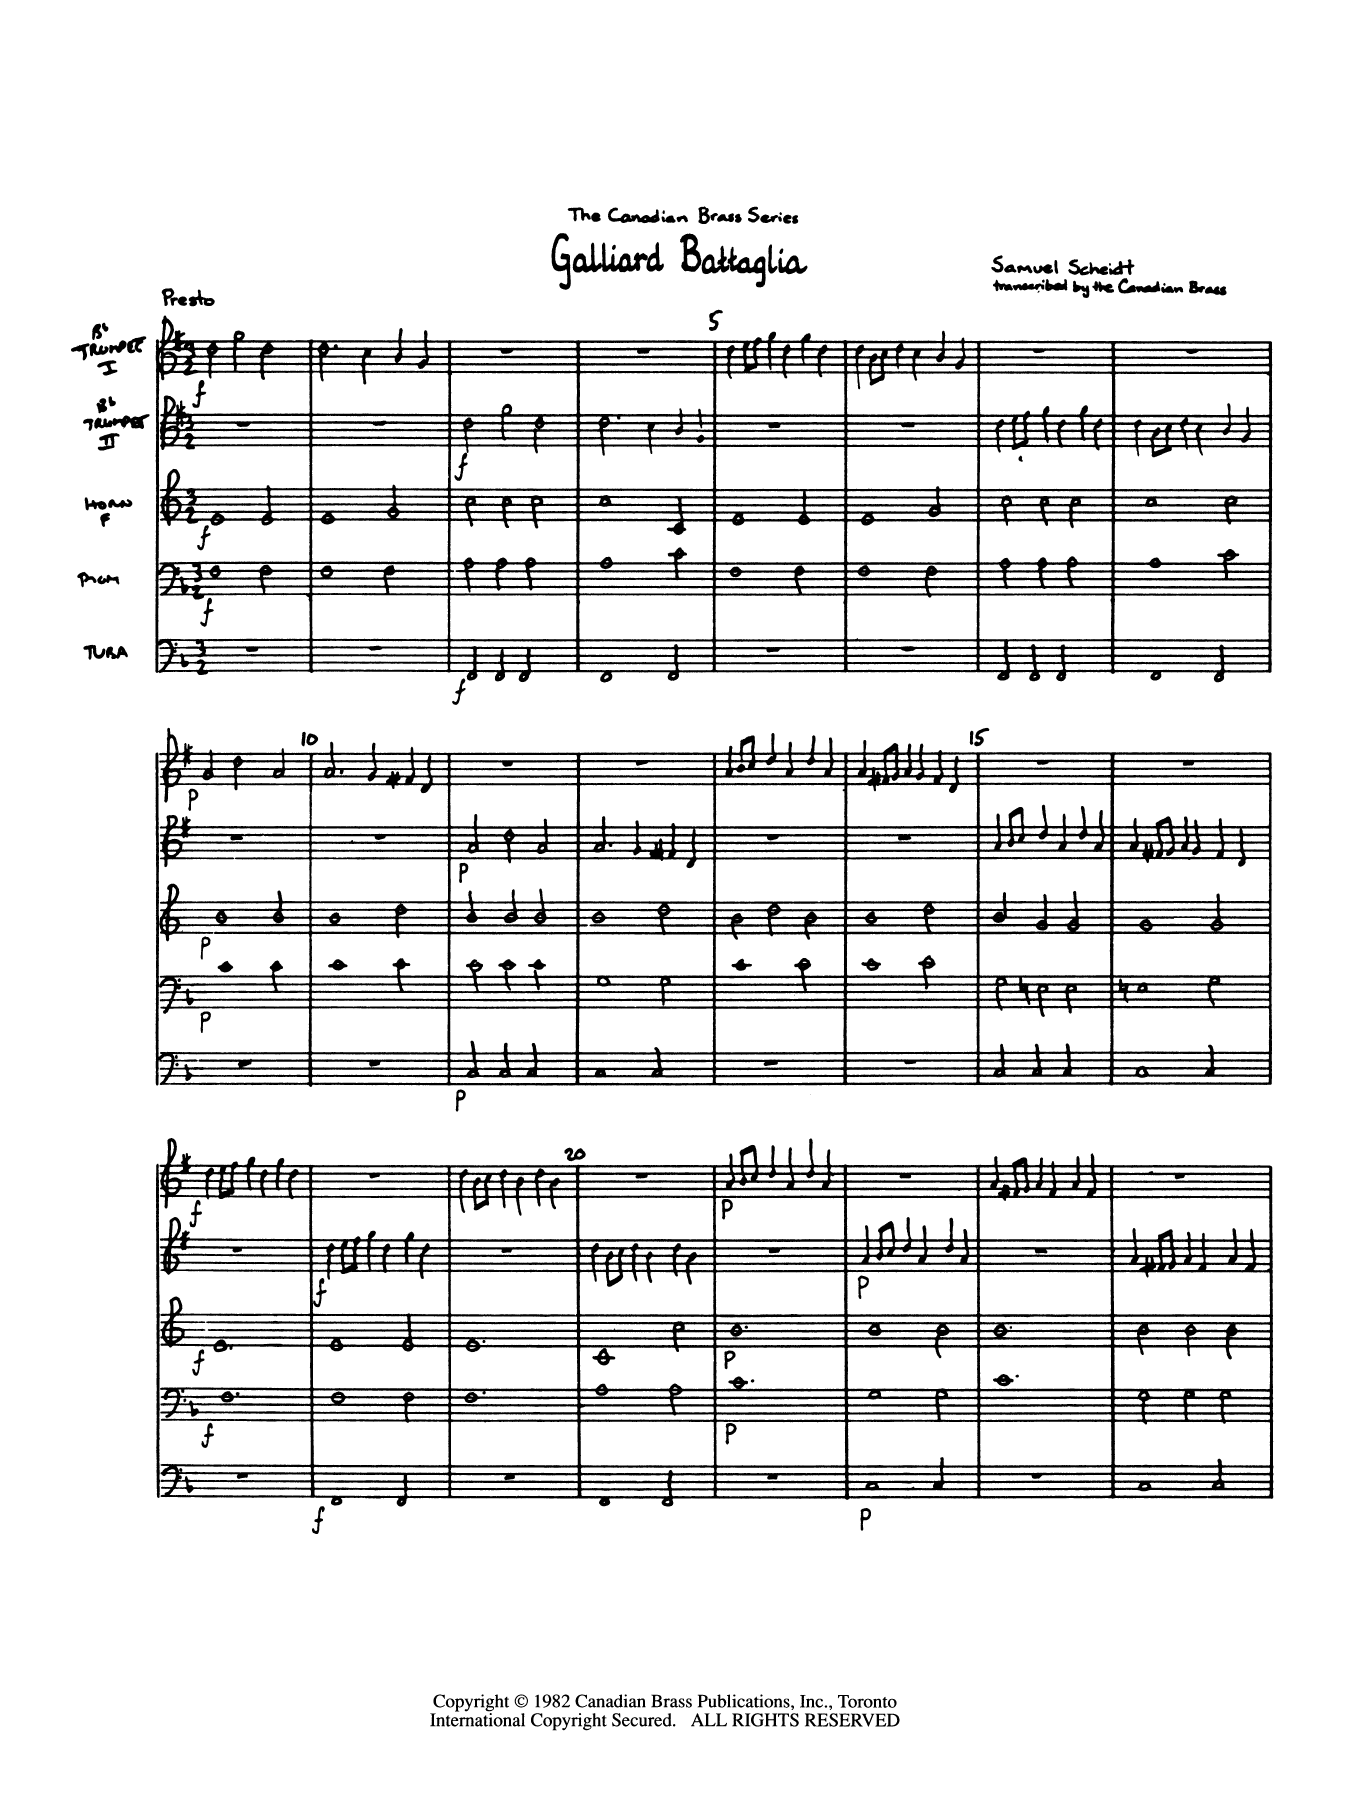 Galliard Battaglia - Full Score Sheet Music